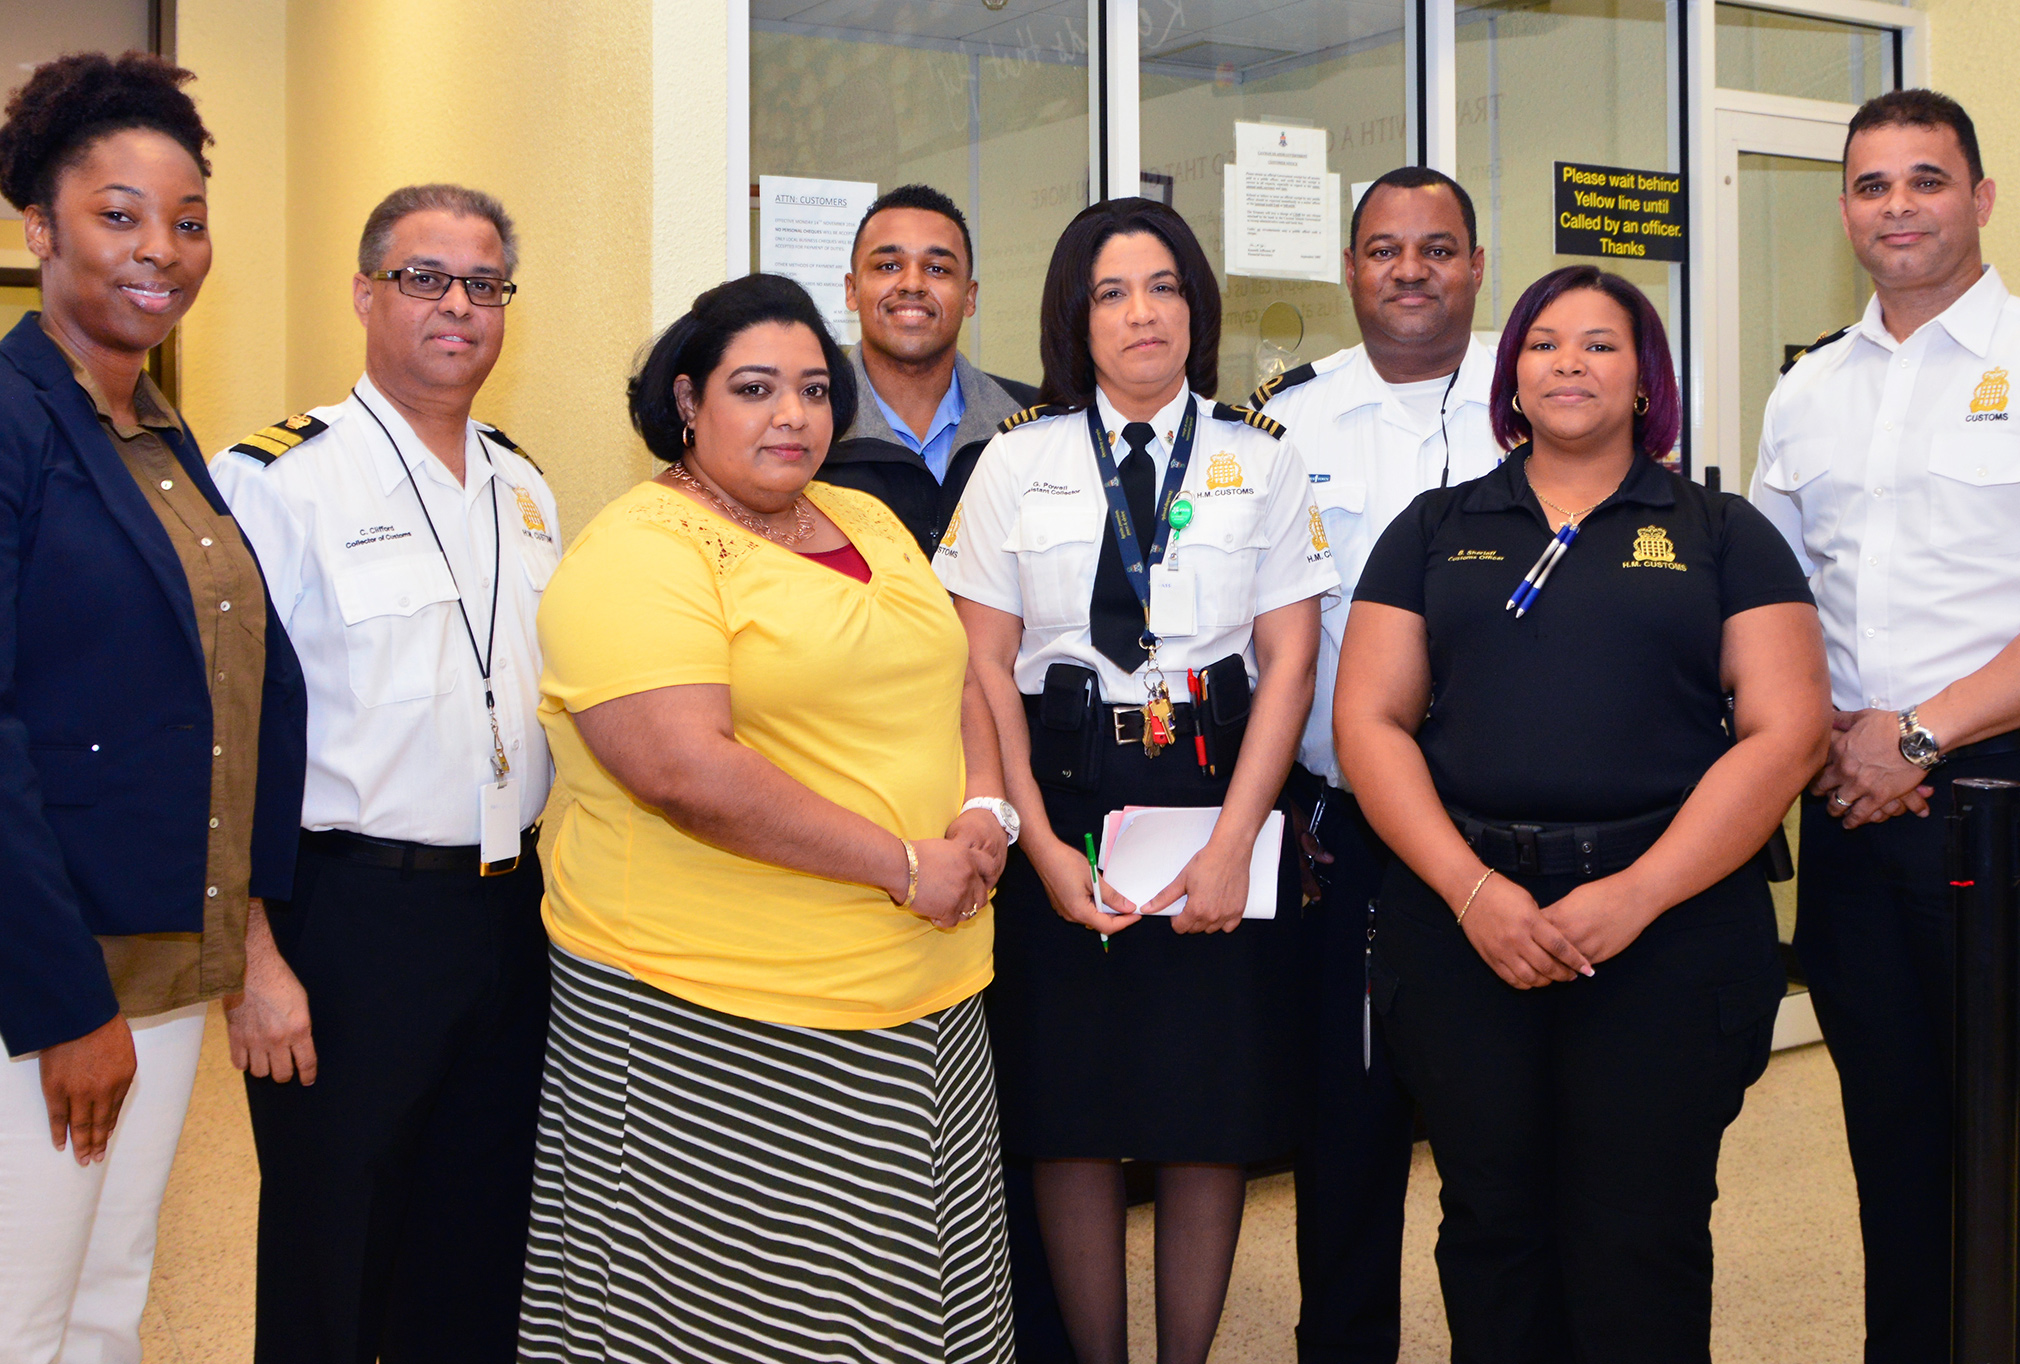 L-r: Customs' Human Resources Manager Ms Simone Mamby, Collector of Customs, Mr. Charles Clifford, member of the public Ms Caroline Roberts, Customs Porter Mr. Stephen Walton, Assistant Collector of Customs, Ms Gidget Powell, Customs Officers Mr. Barry Solomon and Ms Brandi Sherieff, and Deputy Collector of Customs, Mr. Jeff Jackson